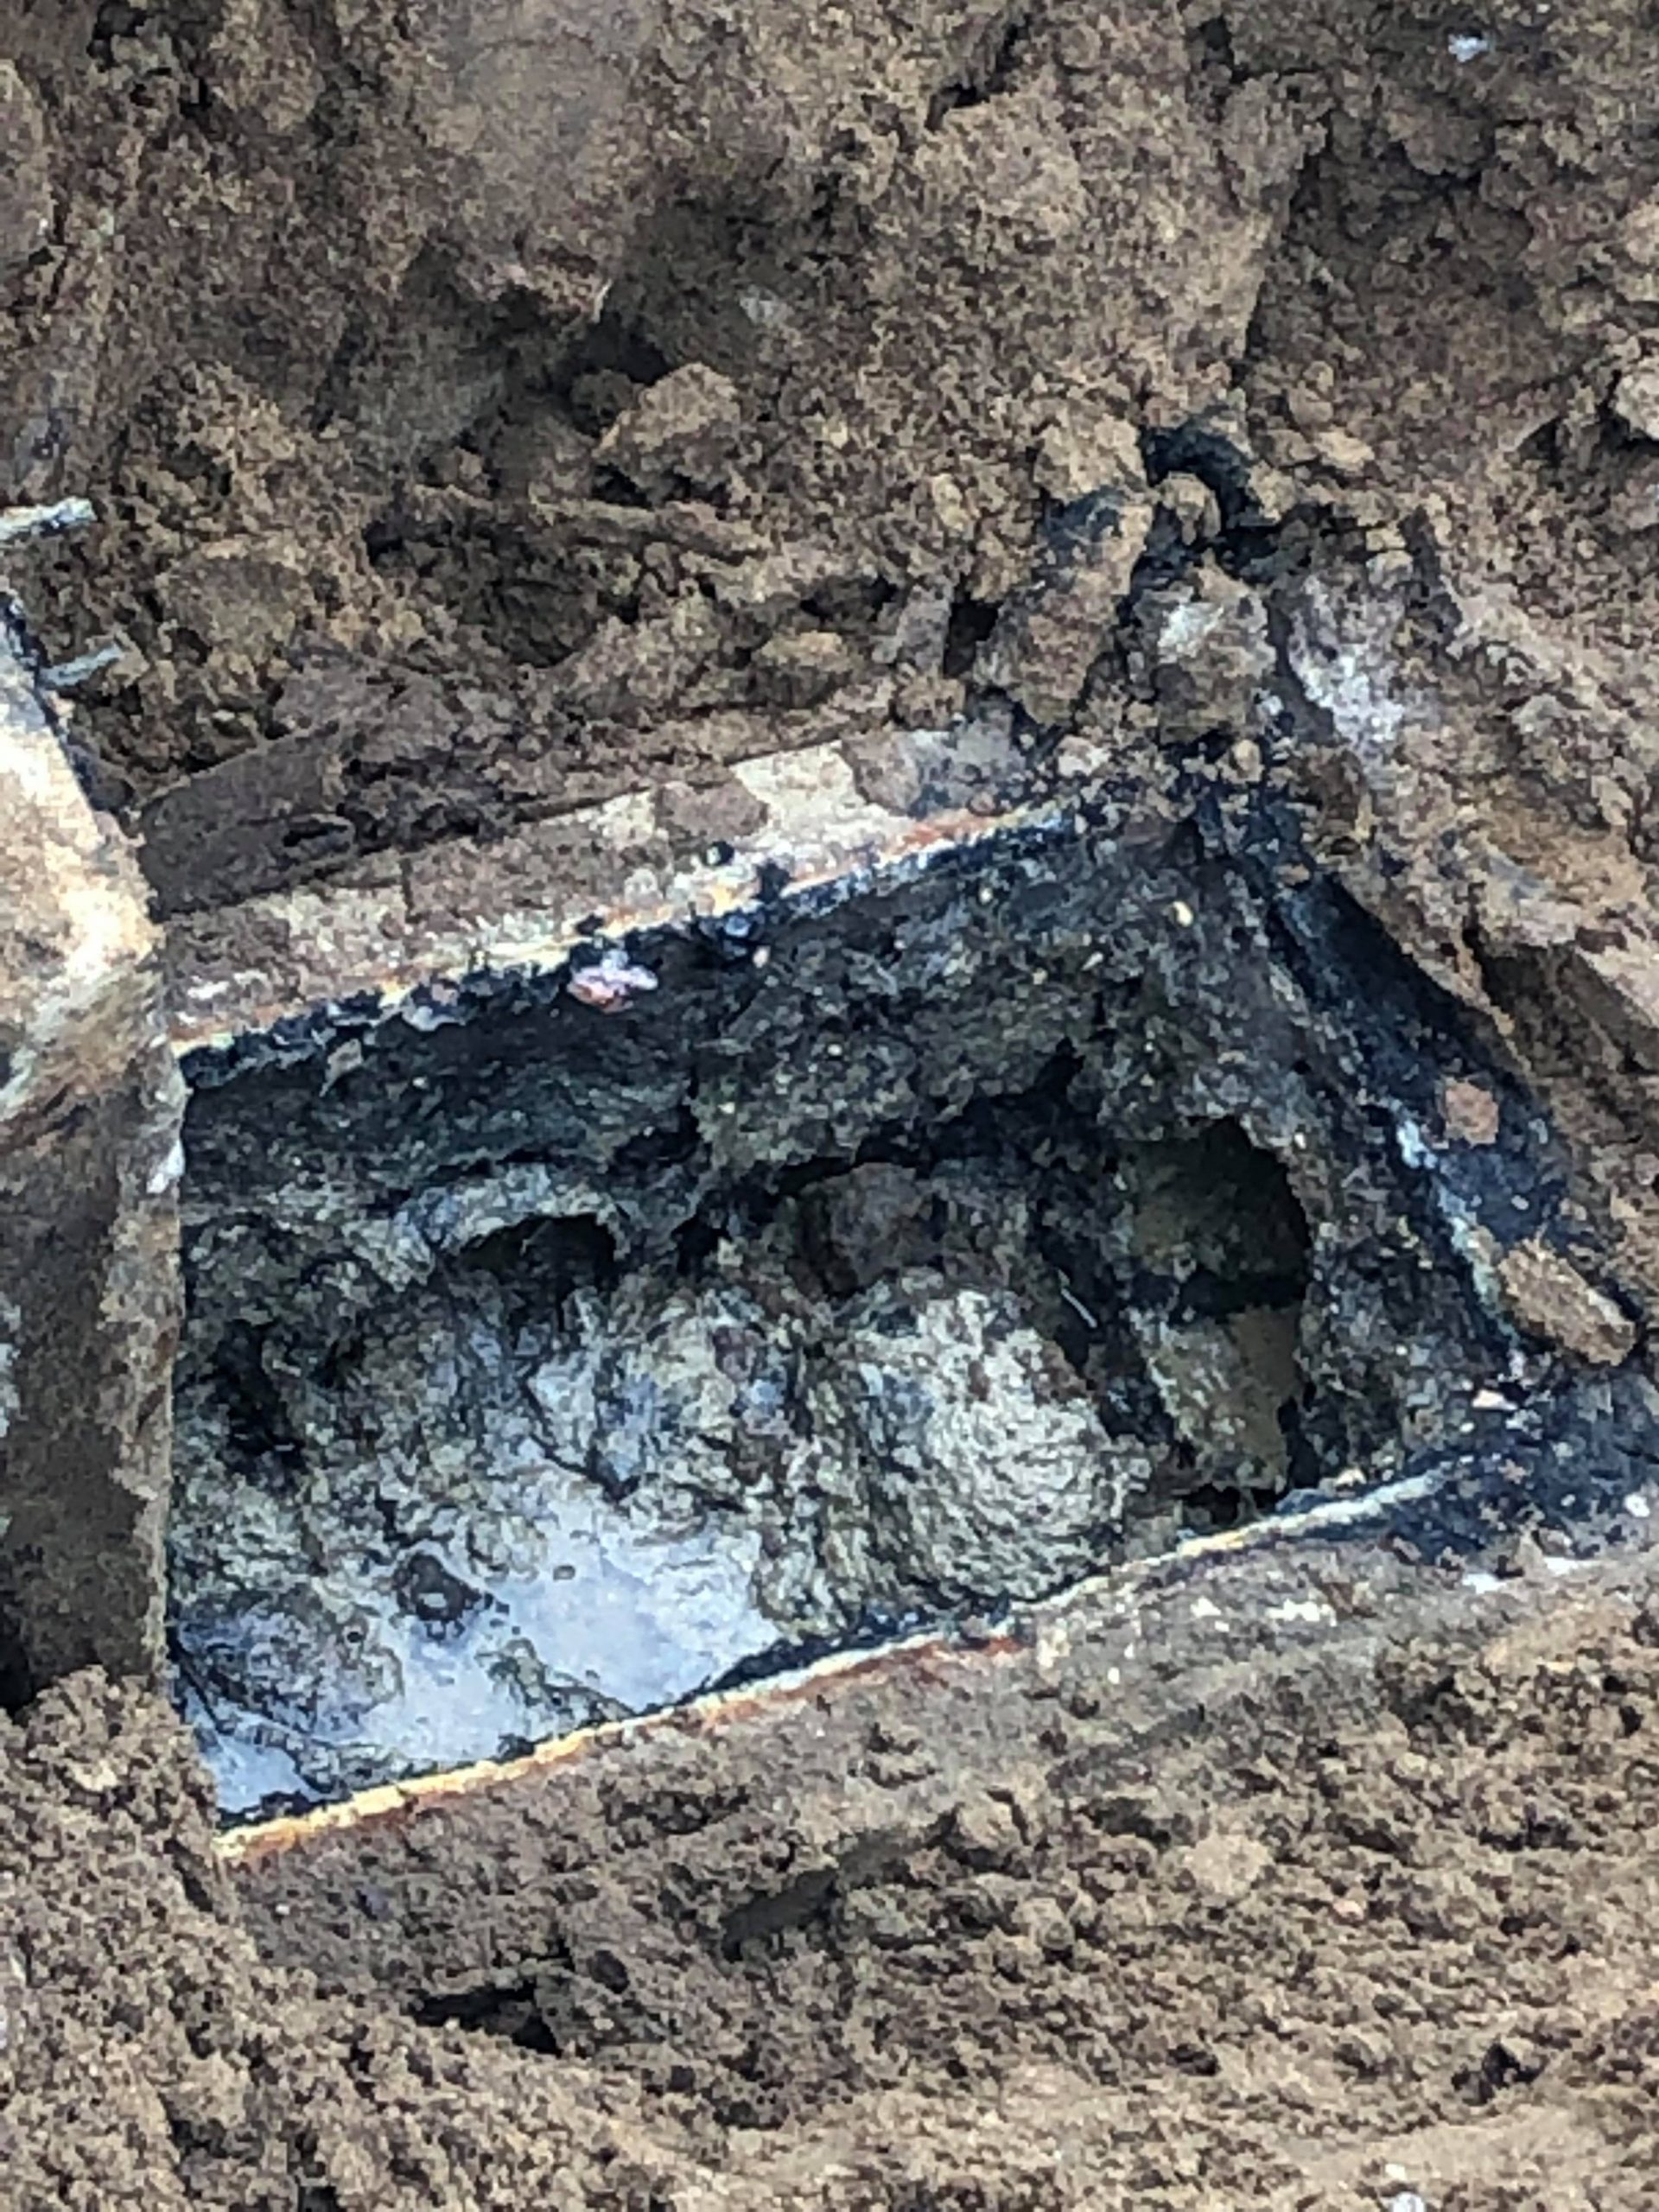 Septic System Trouble Signs: When Green Is Not A Good Thing